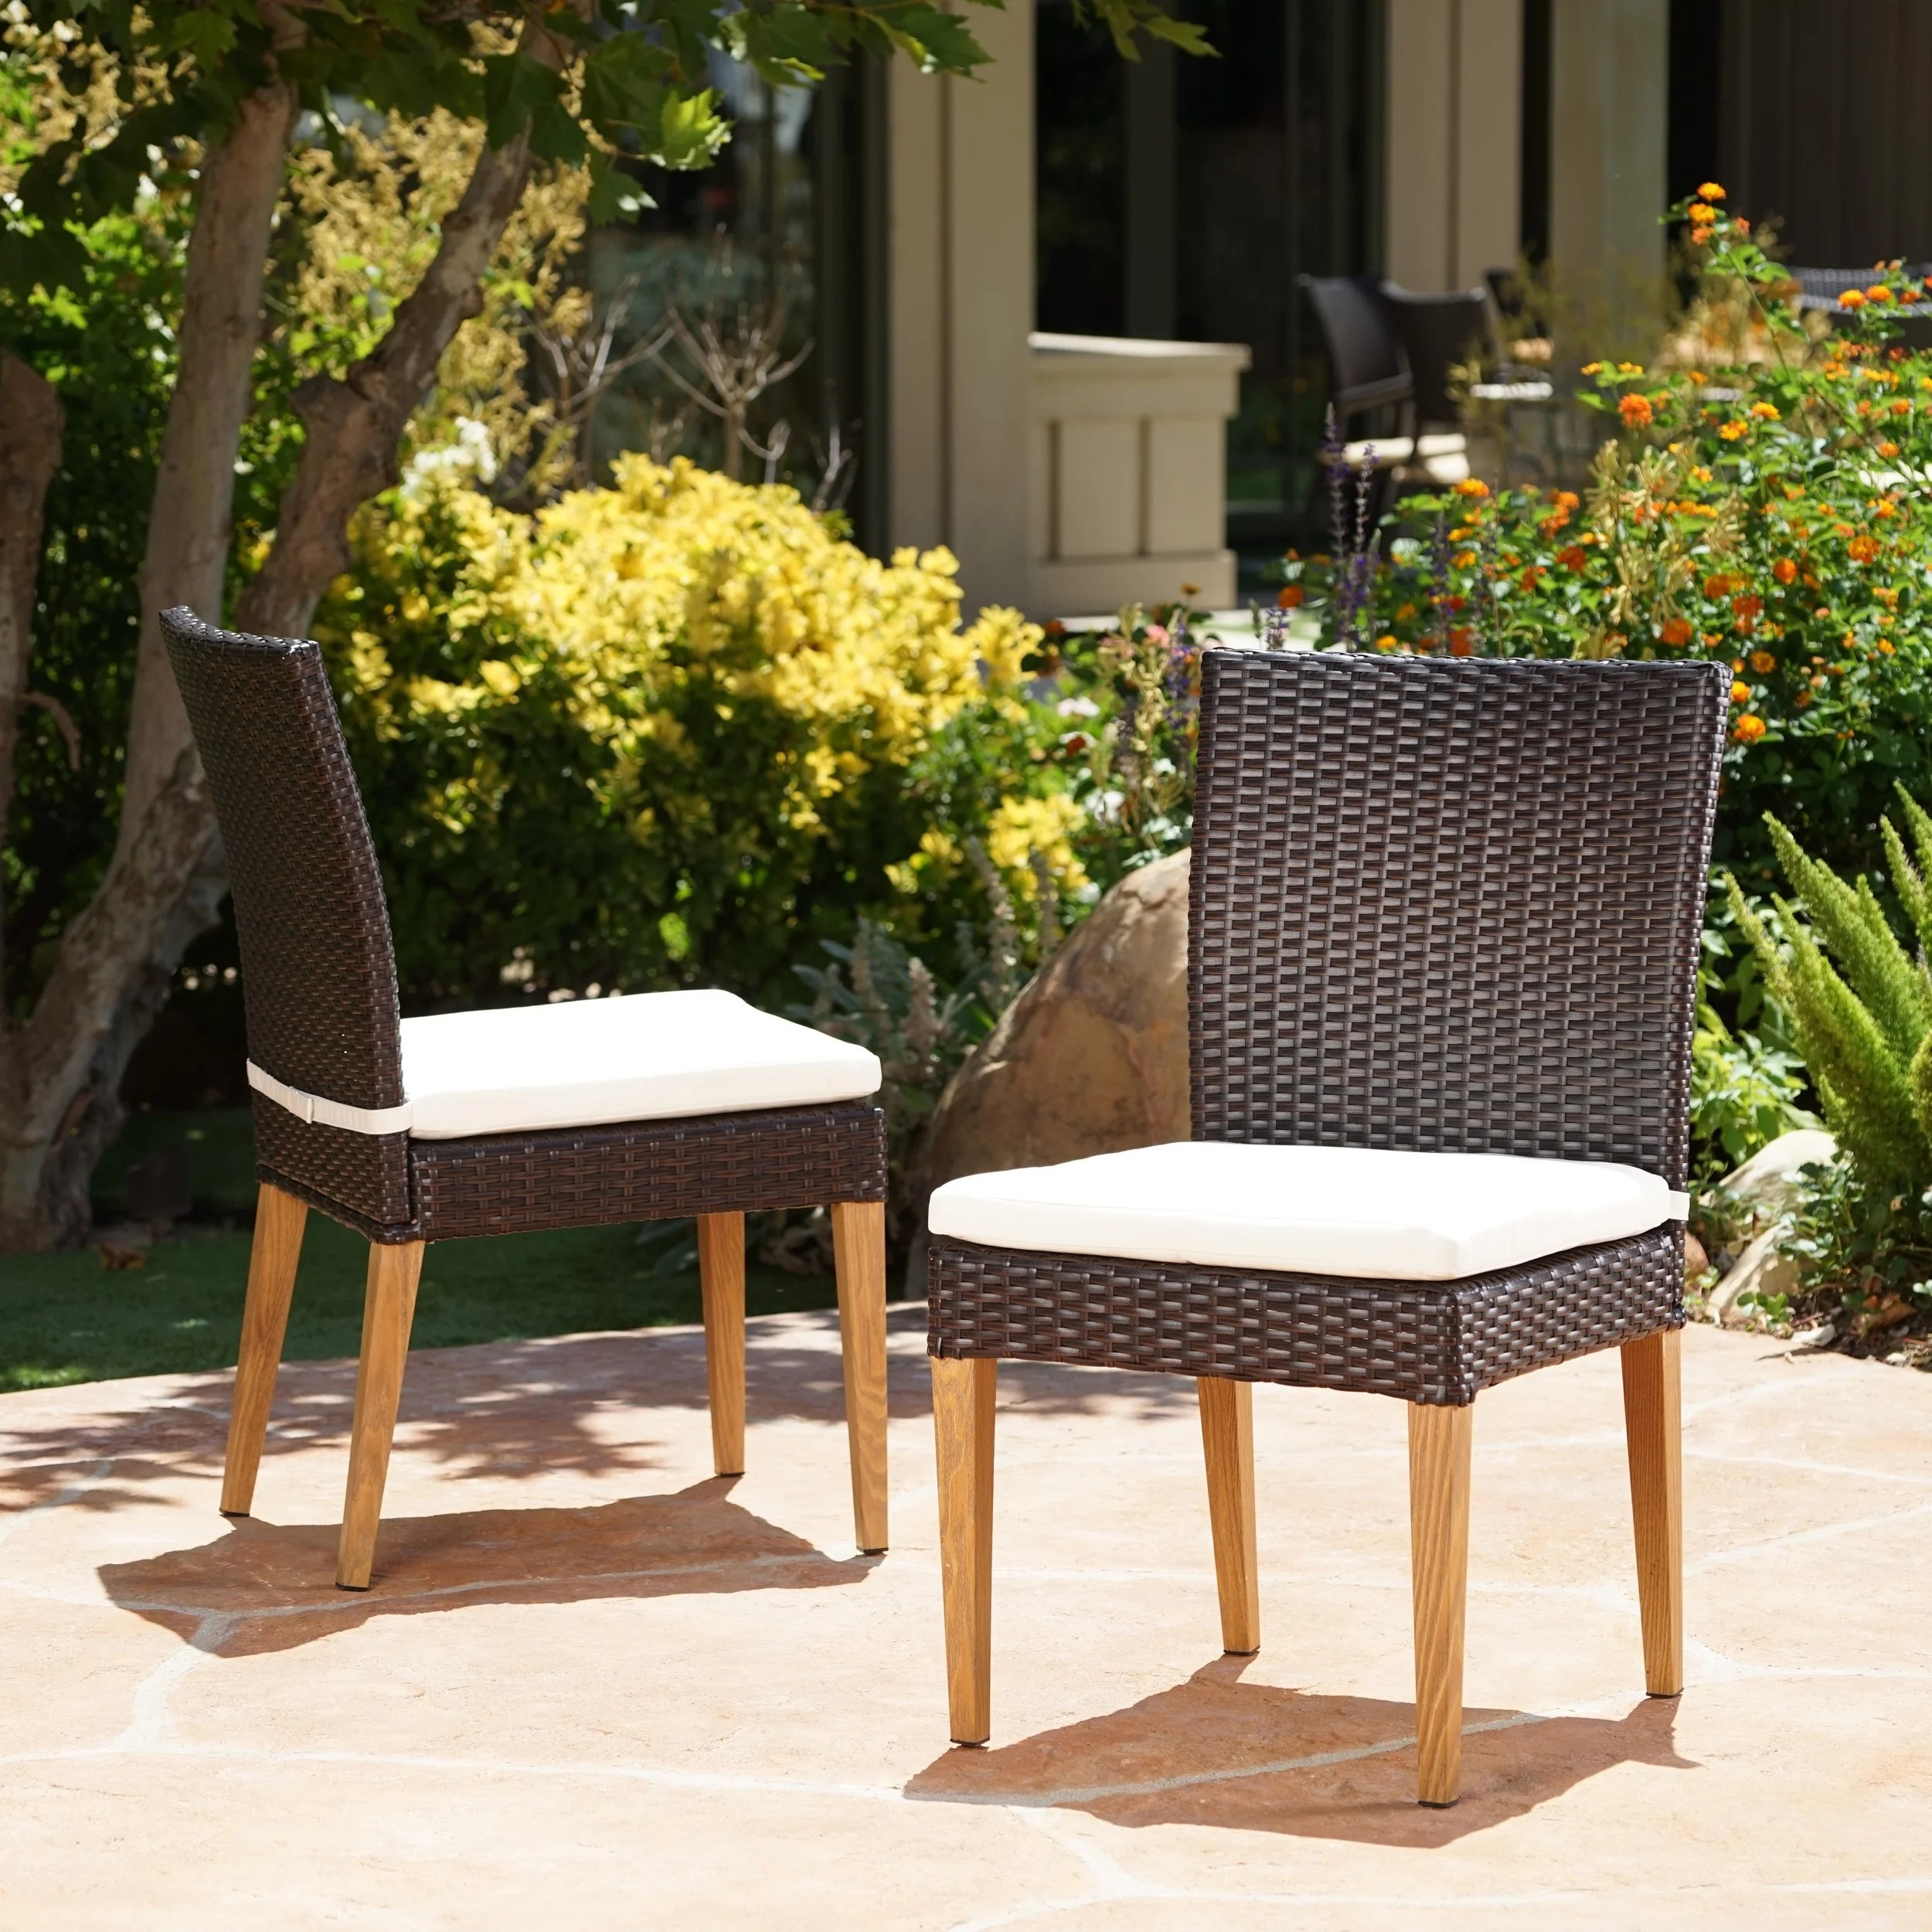 Outdoor Wicker Dining Chairs Santa Barbara Outdoor Wicker Dining Chair With Cushion Set Of 2 By Christopher Knight Home